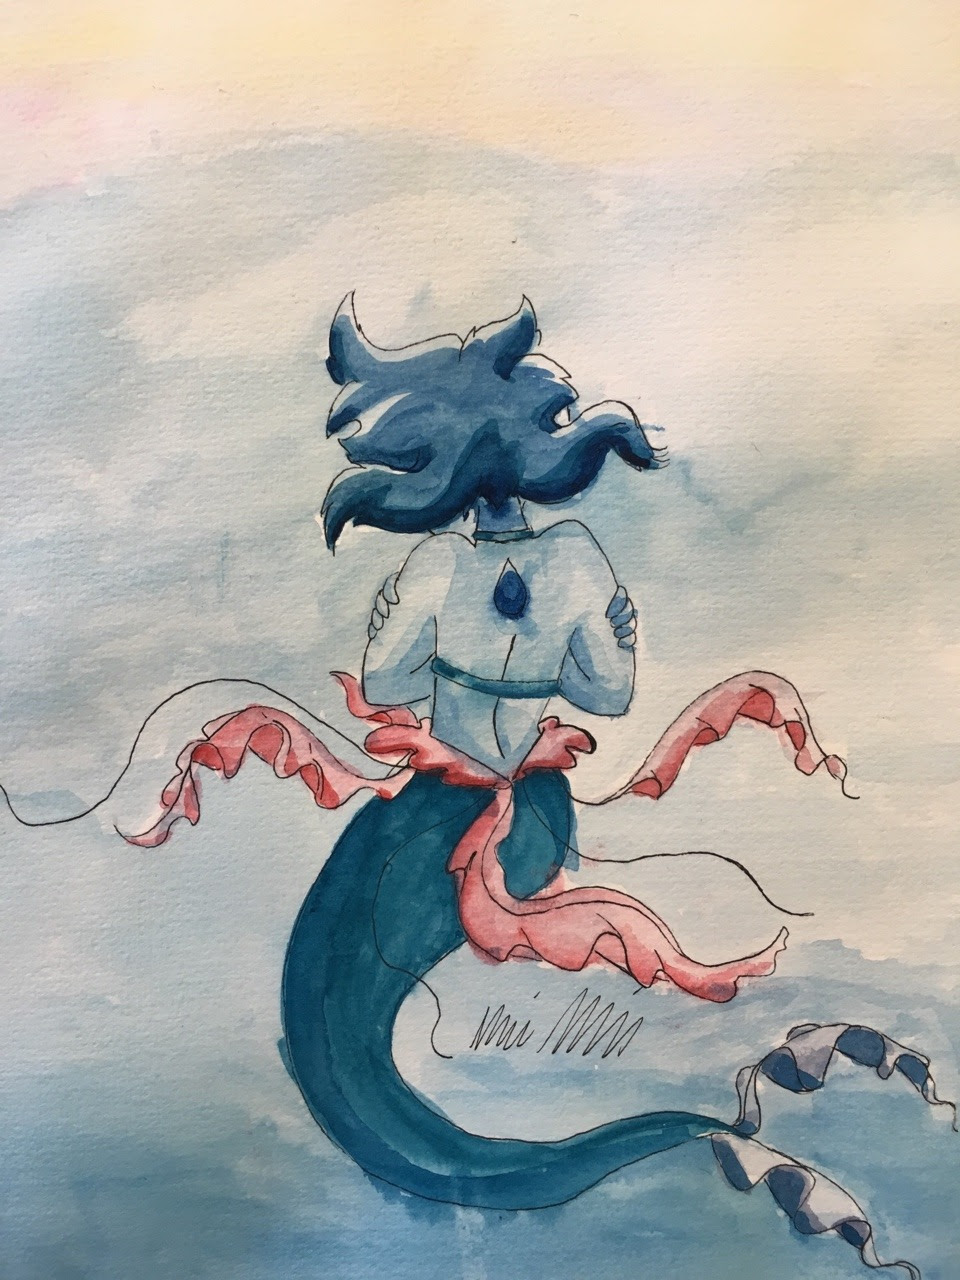 I dunno why but Lapis mermaid with jellyfish tendrils appeals to me very much. Watercolor